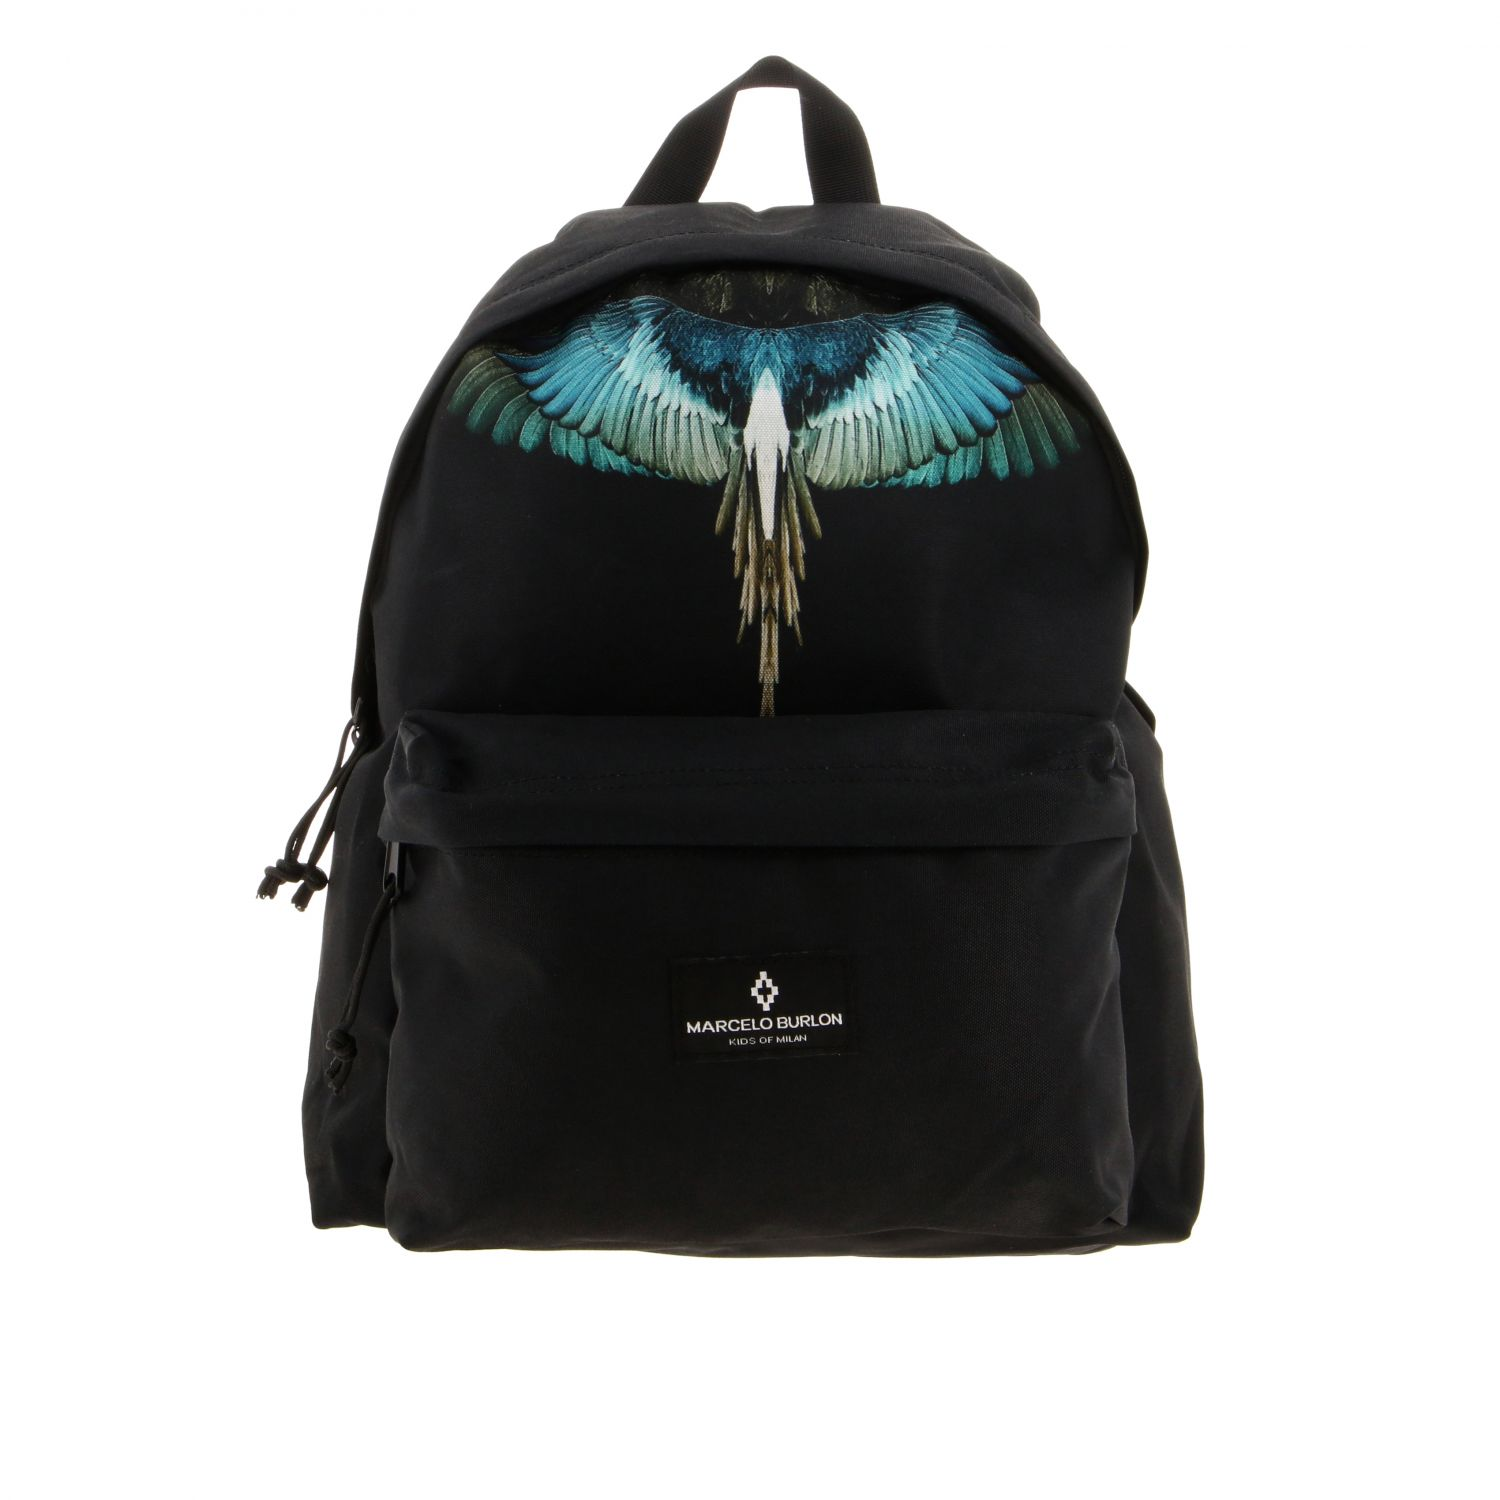 Duffel bag kids Marcelo Burlon black 1